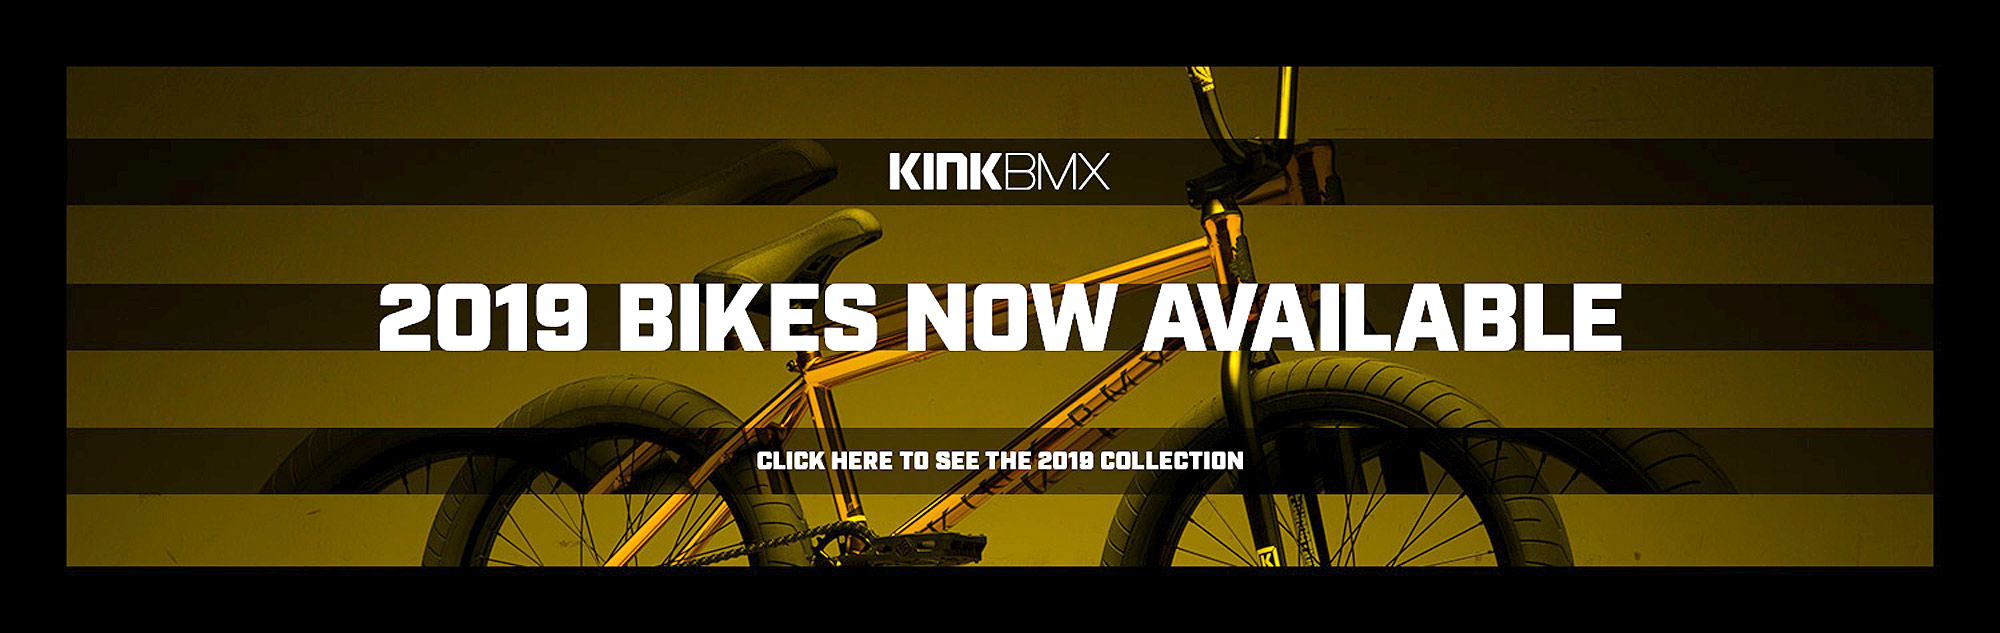 Shop for the Kink BMX 2019 Line of Bikes at Albe's BMX Bike Shop Online